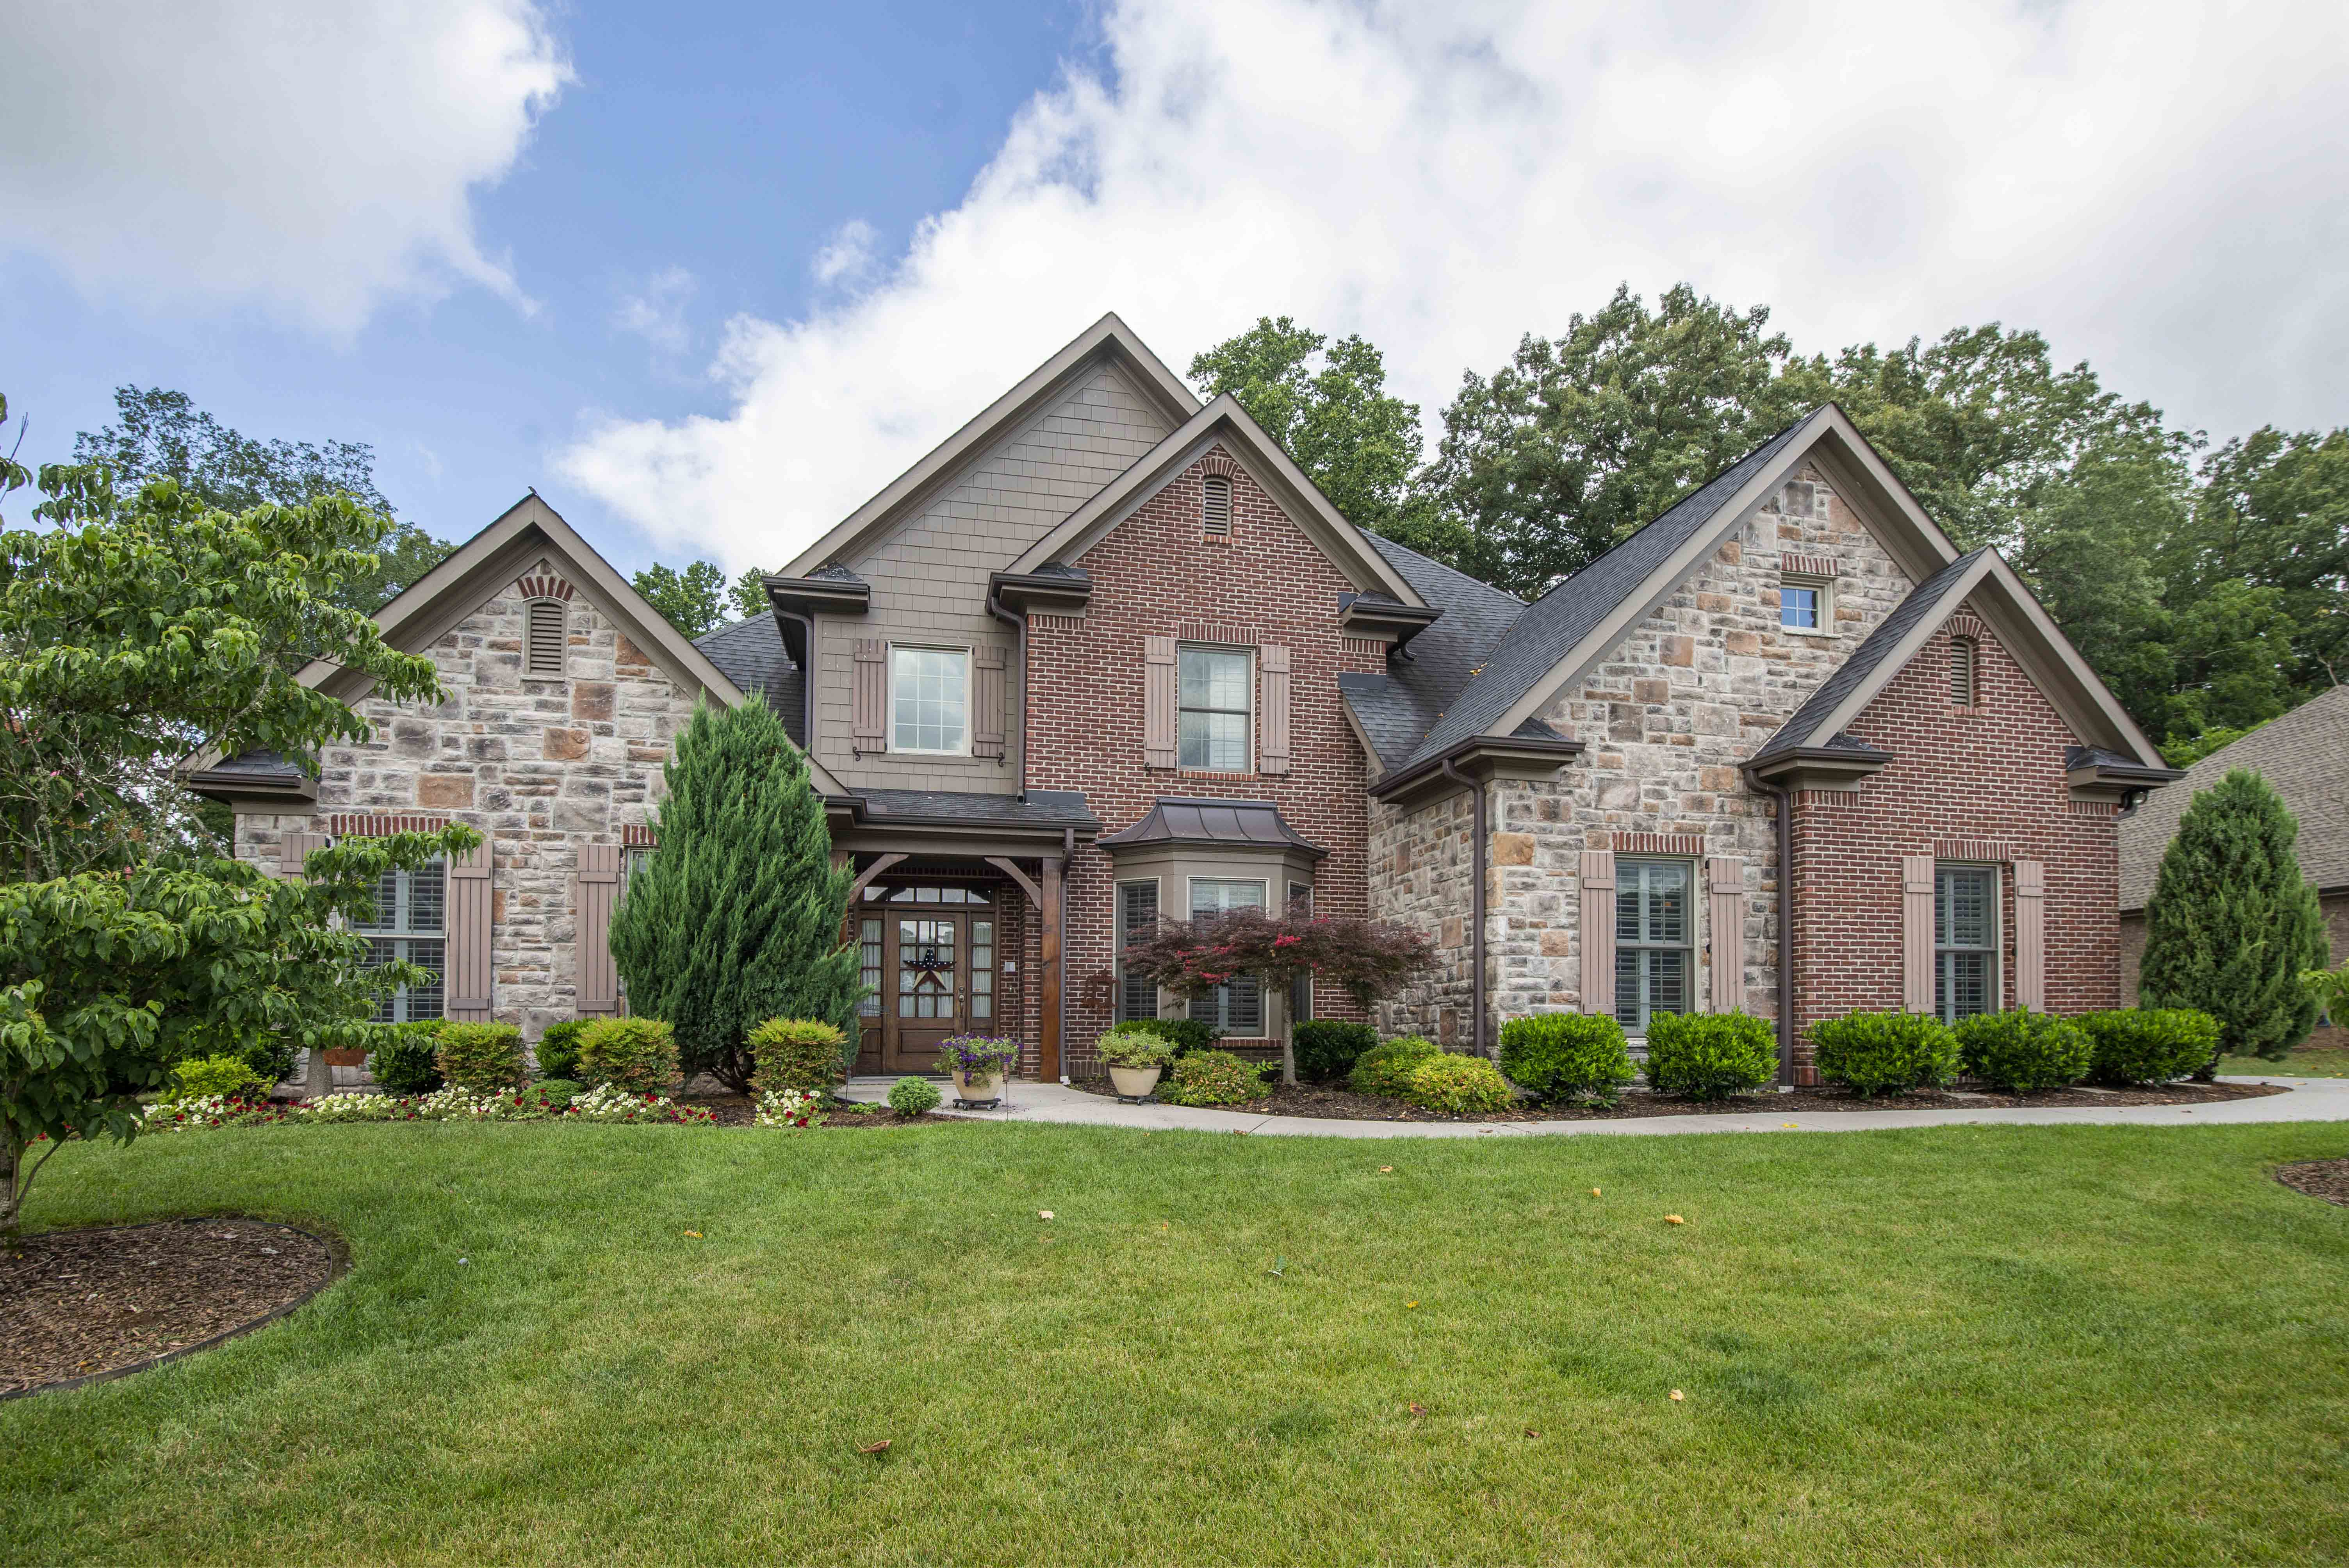 Hardin Valley Homes for Sale